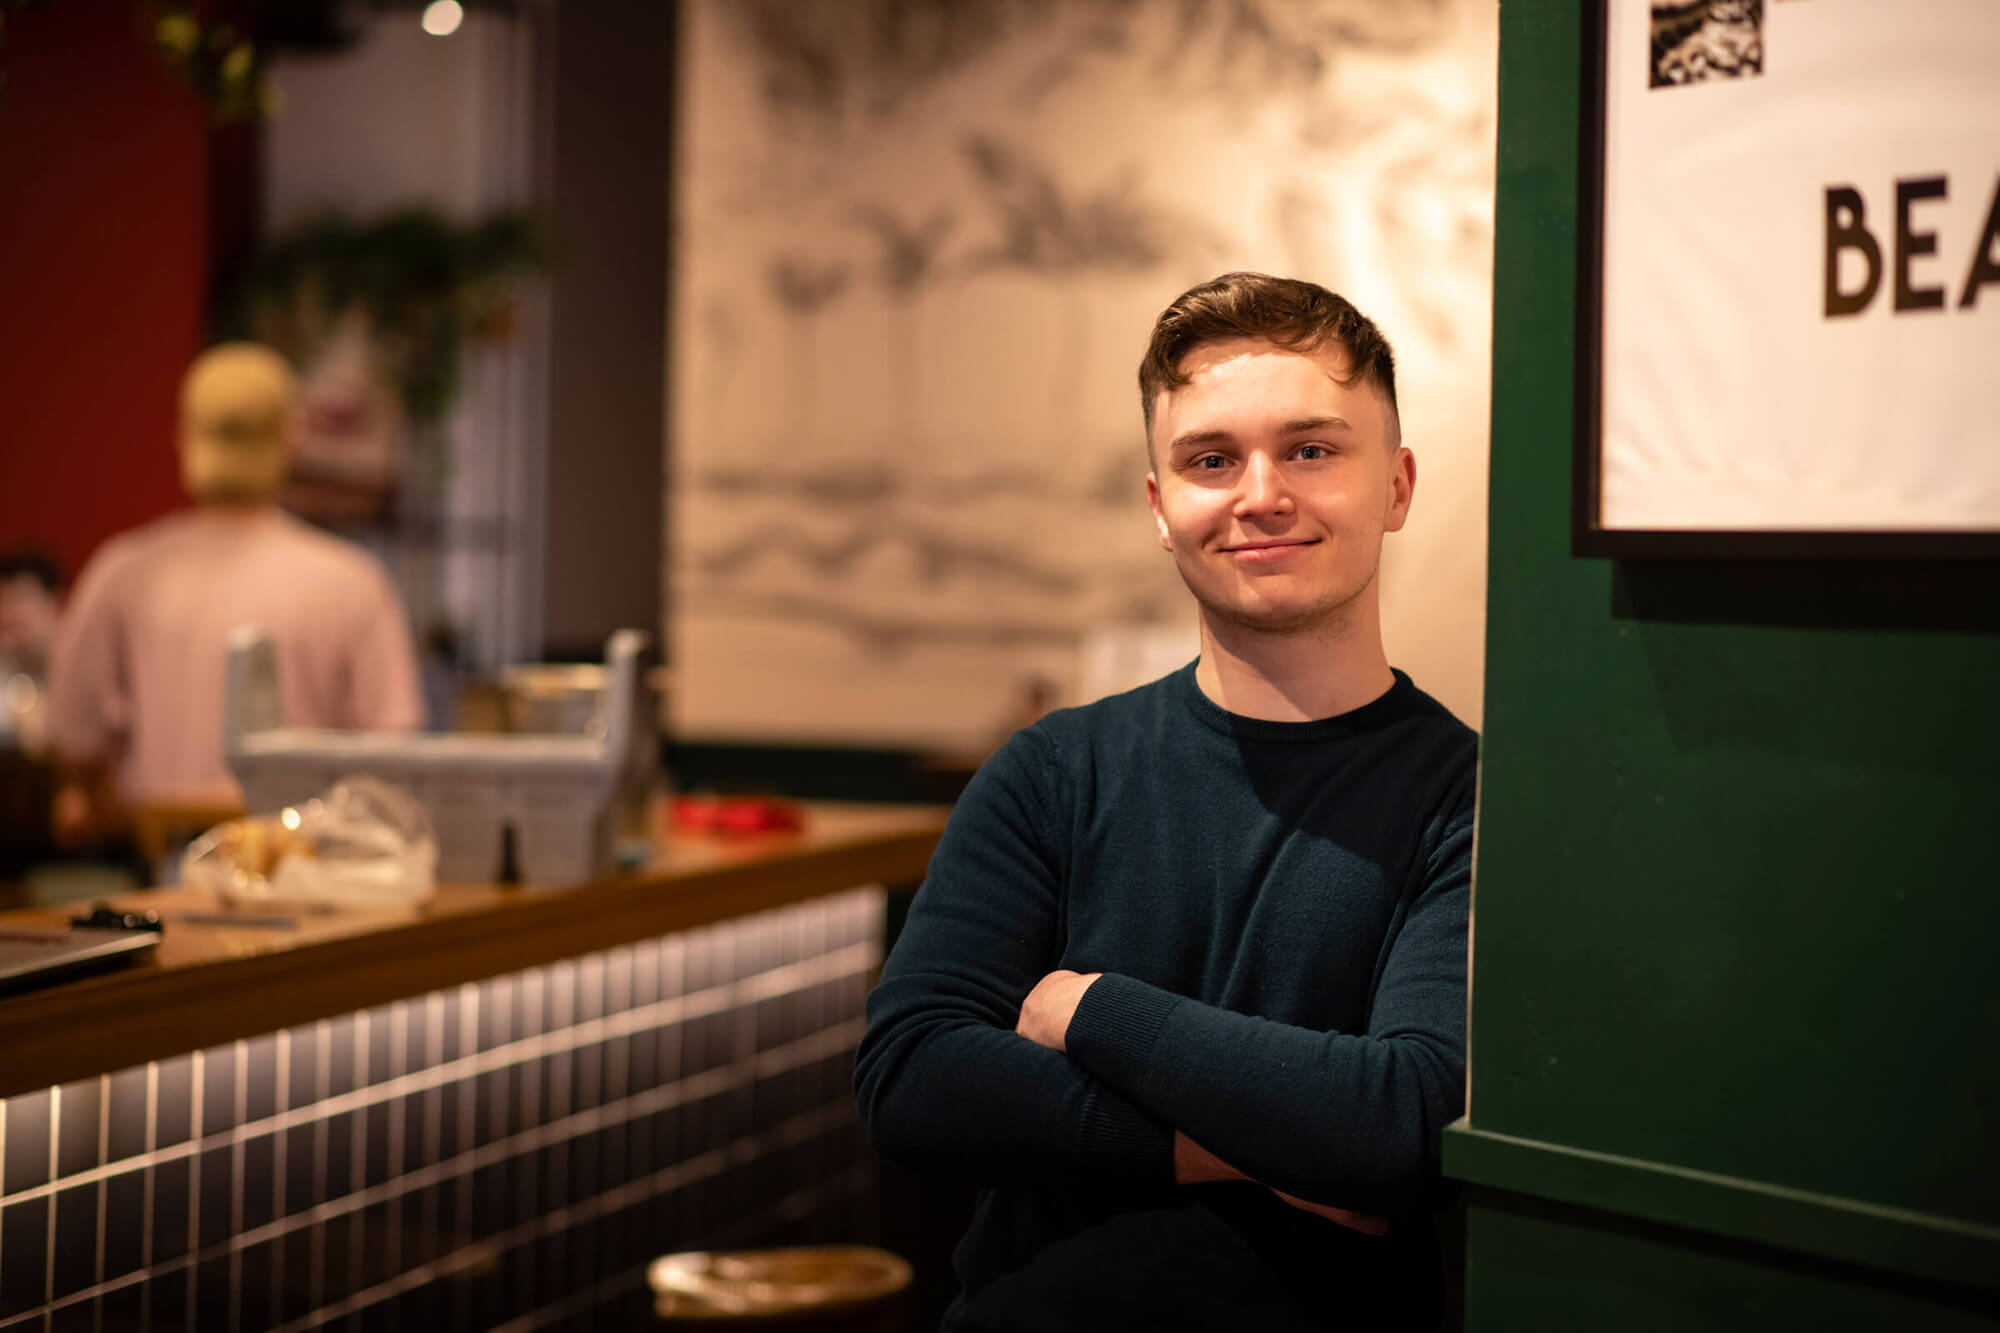 Thomas with his arms crossed, leaning against a wall in a cafe wearing a sweater